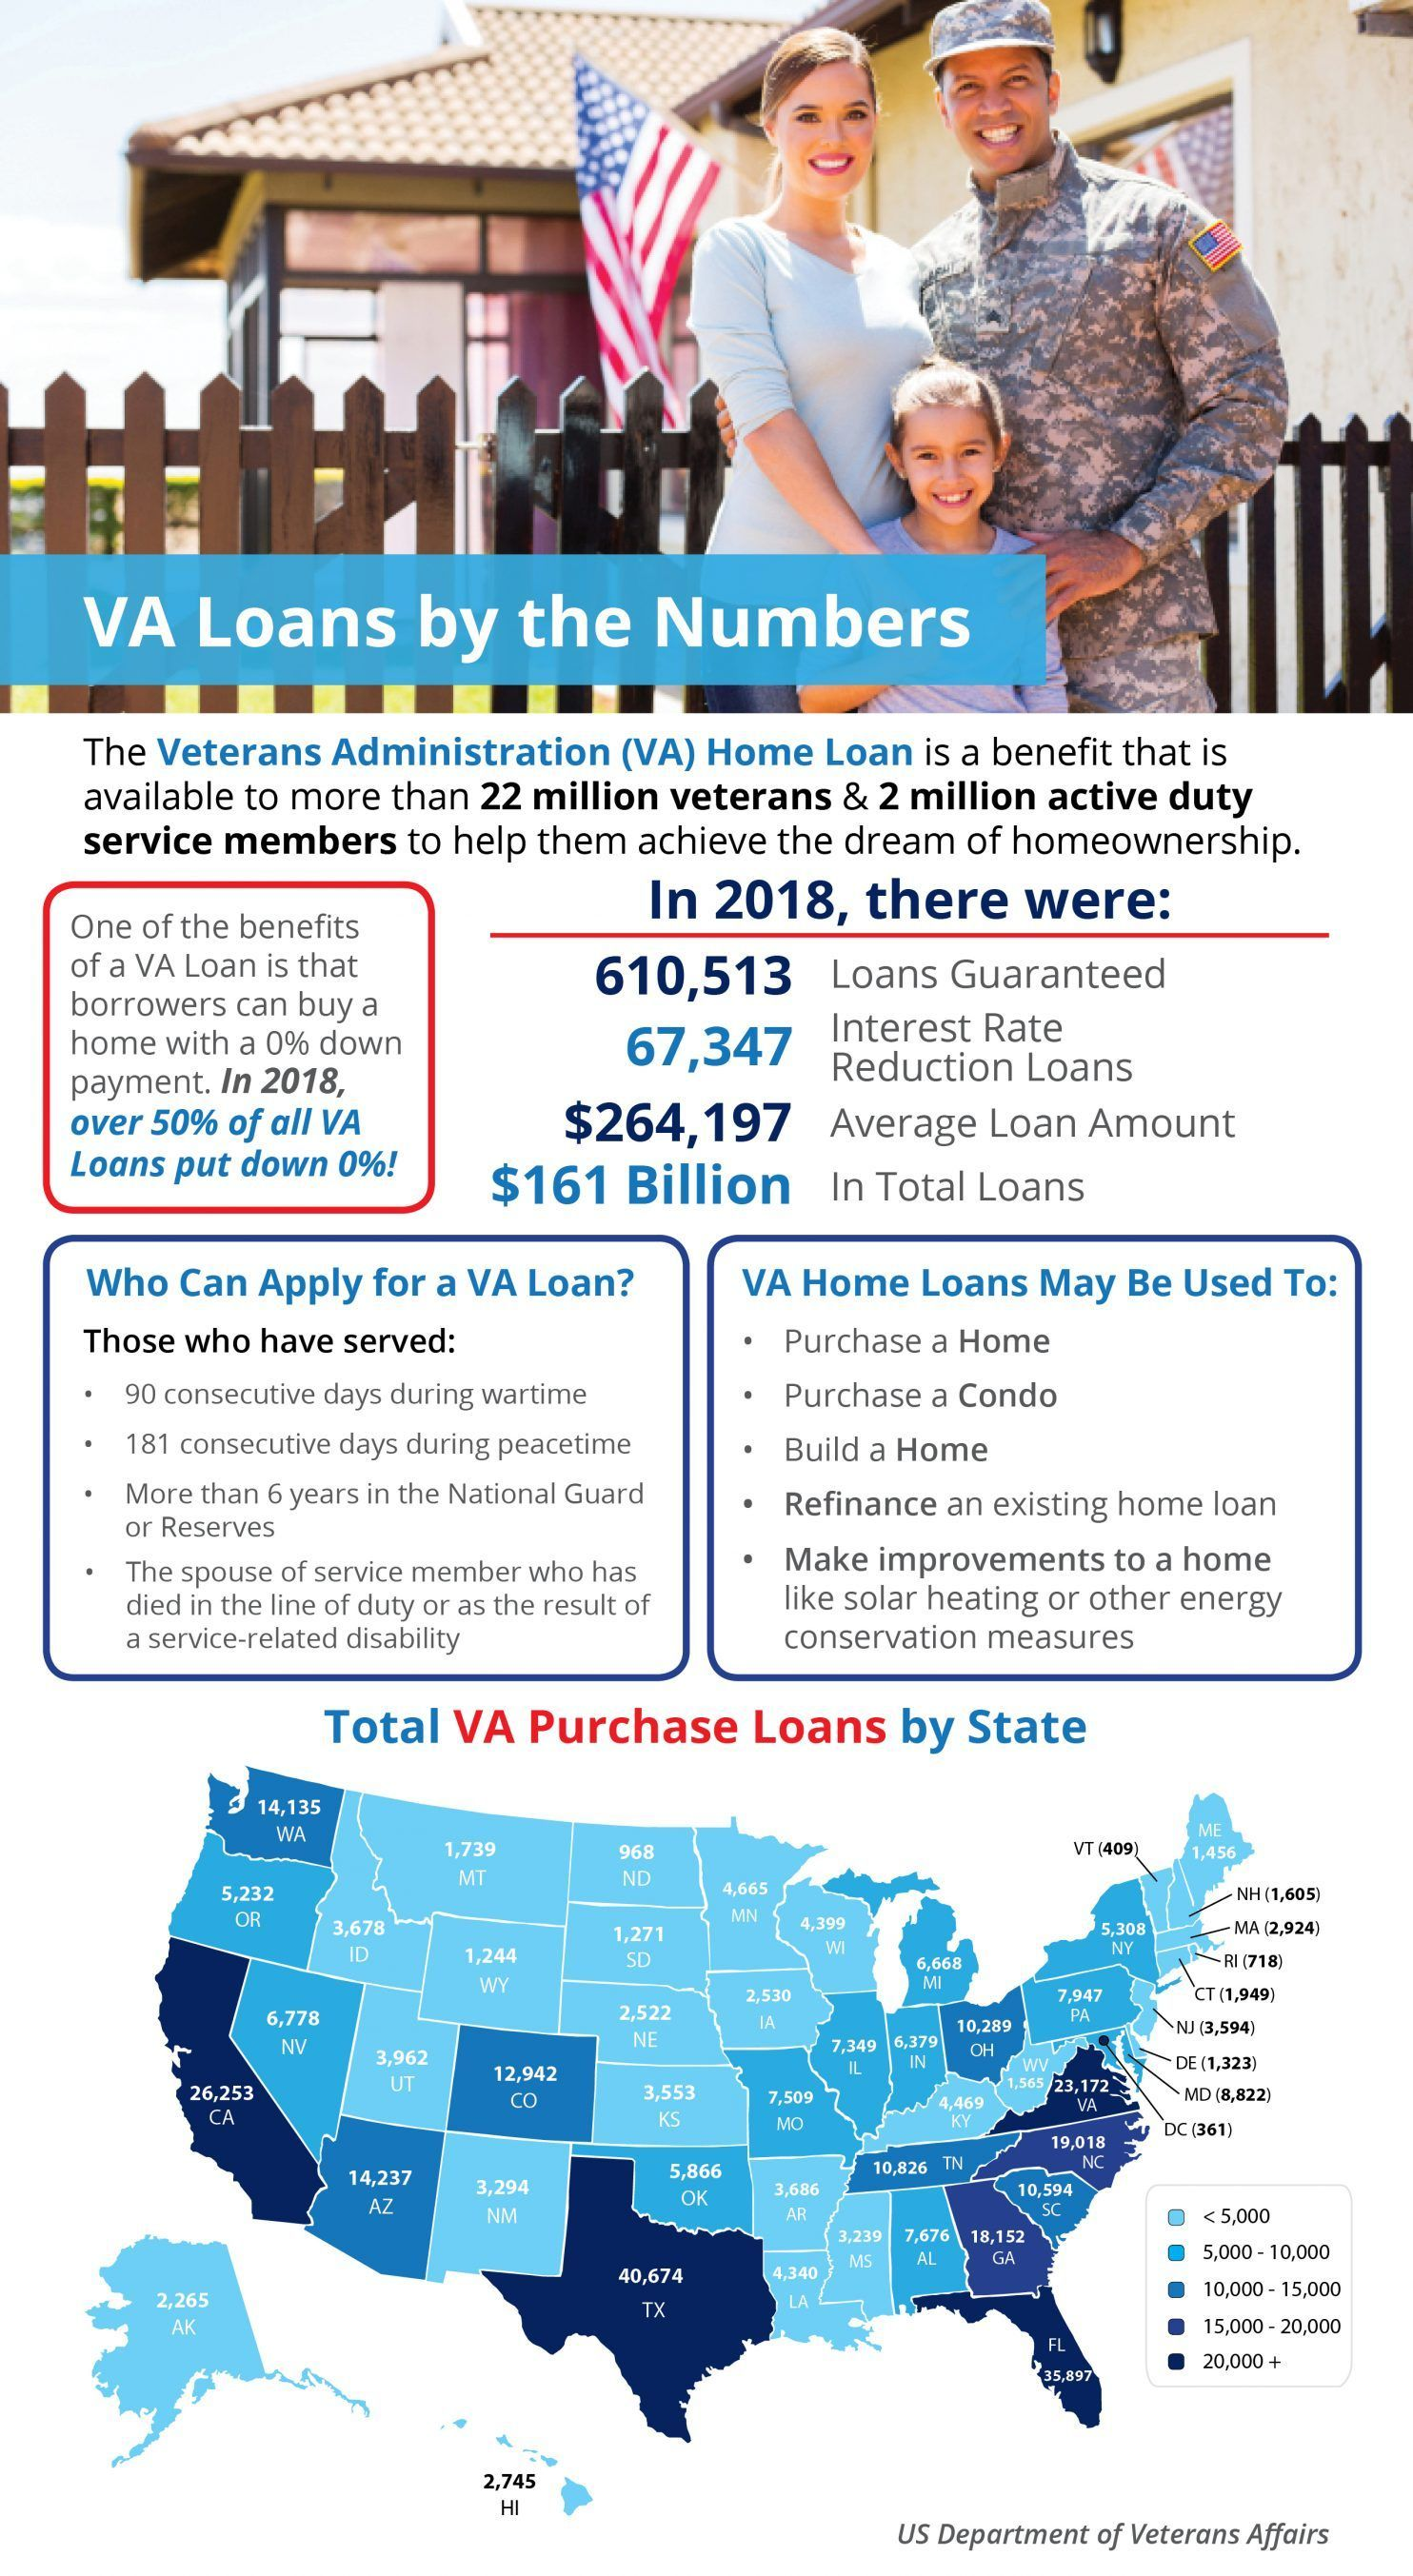 The Veterans Administration (VA) Home Loan is a benefit ...